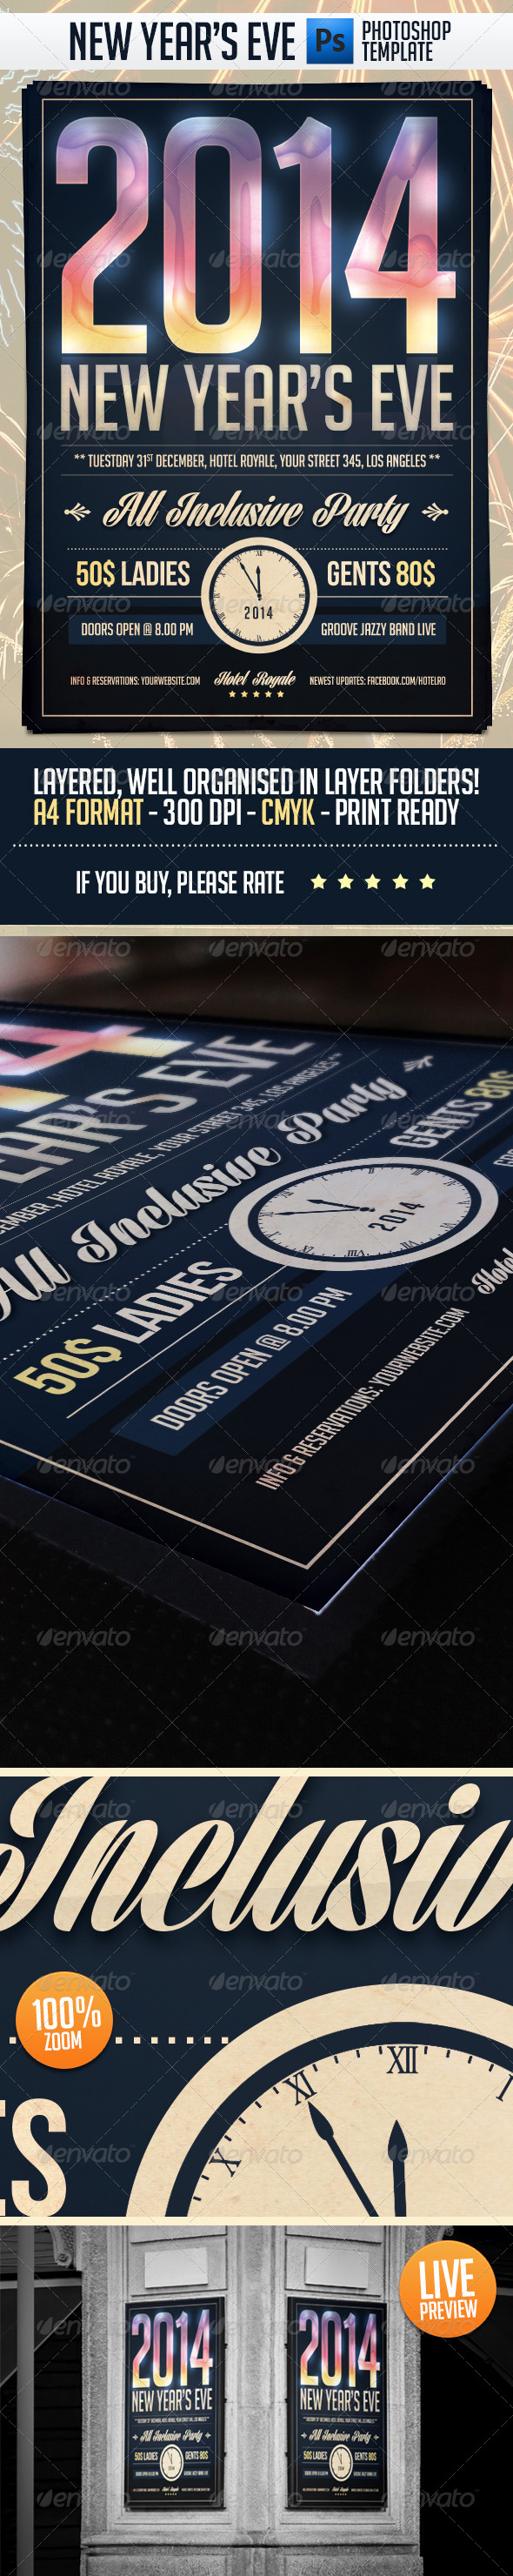 New Year Eve Party Flyer Template - Holidays Events